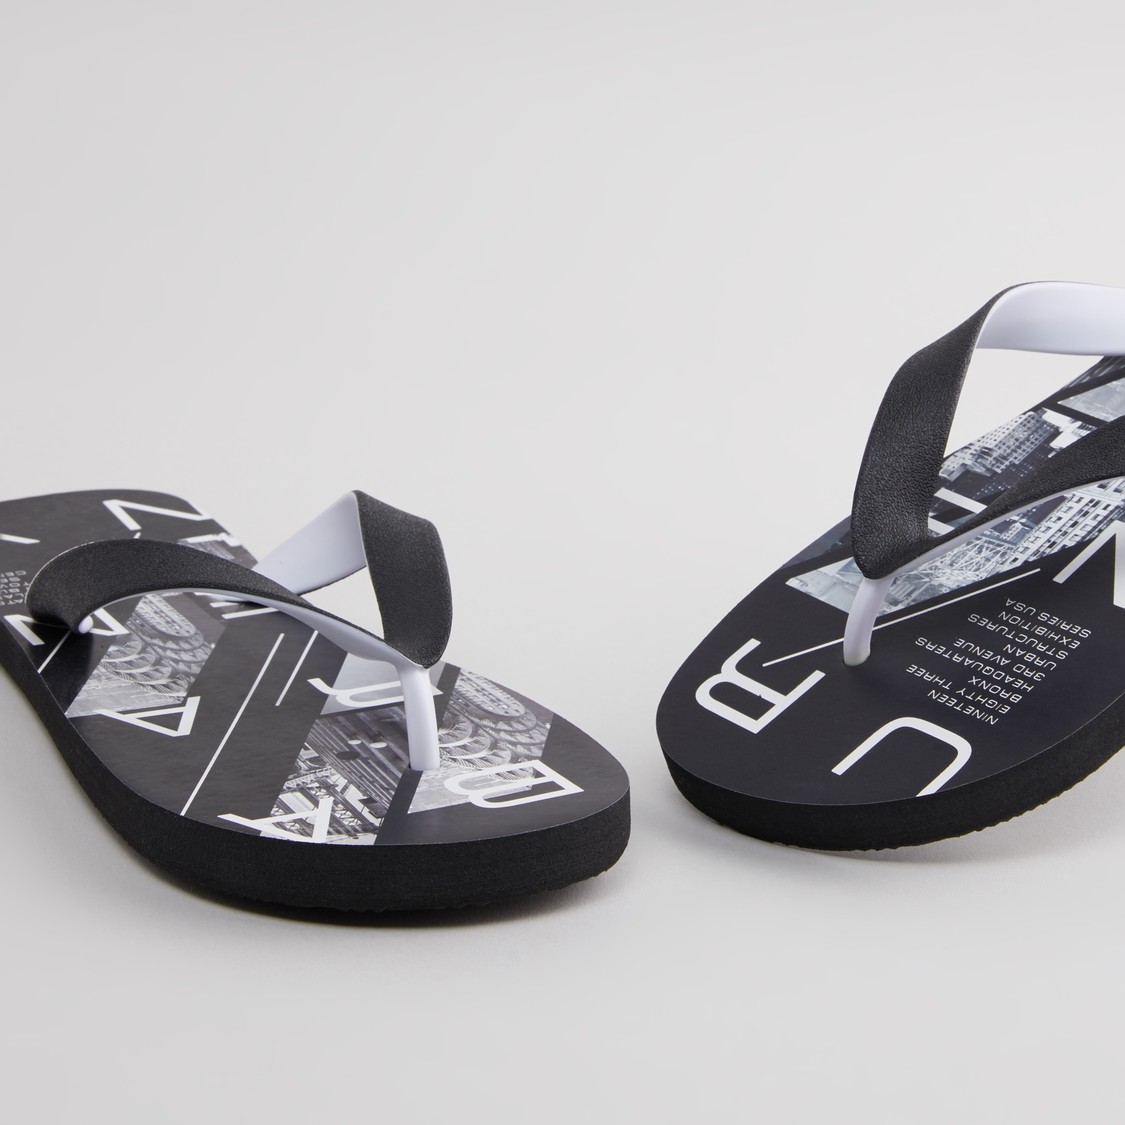 Graphic Printed Flip Flops